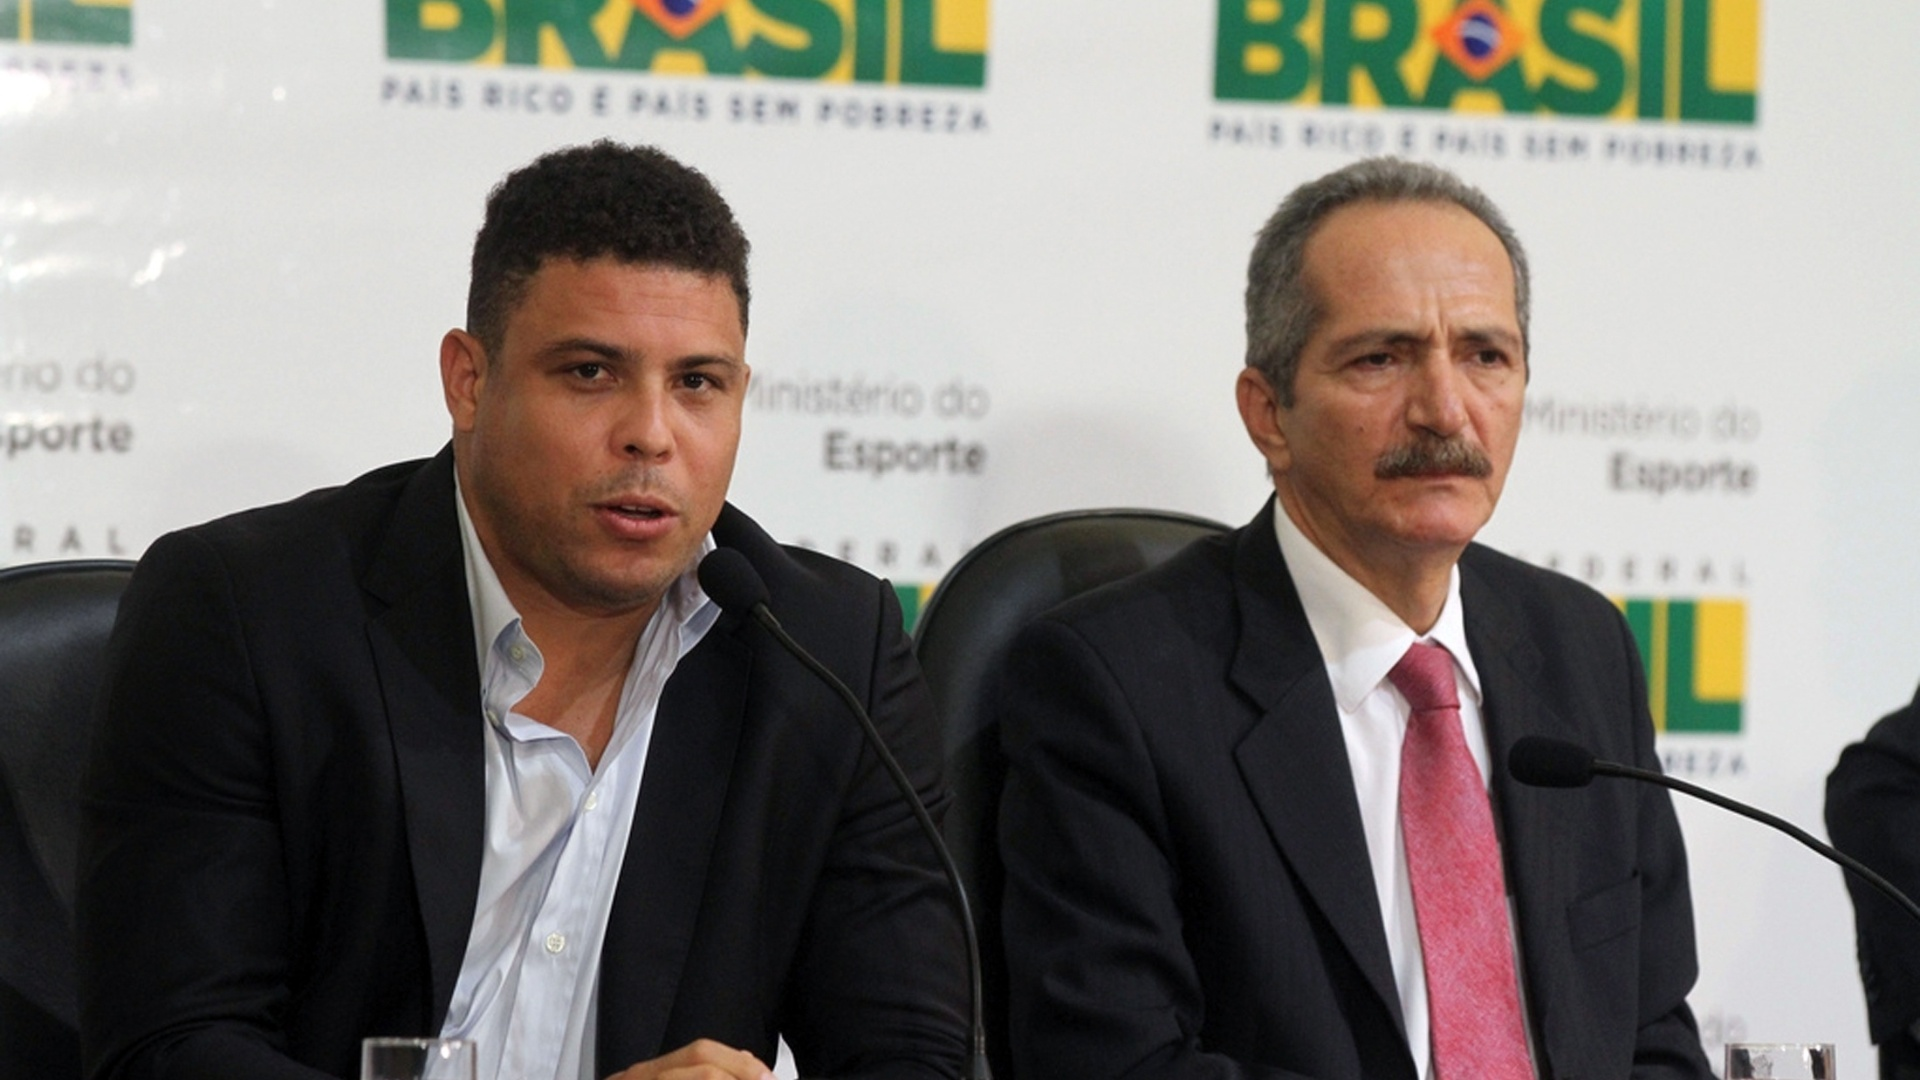 O ministro do Esporte, Aldo Rebelo, com o ex-jogador Ronaldo Nazario, durante coletiva de imprensa sobre a preparao da Copa do Mundo de 2014 (14/1/2012)